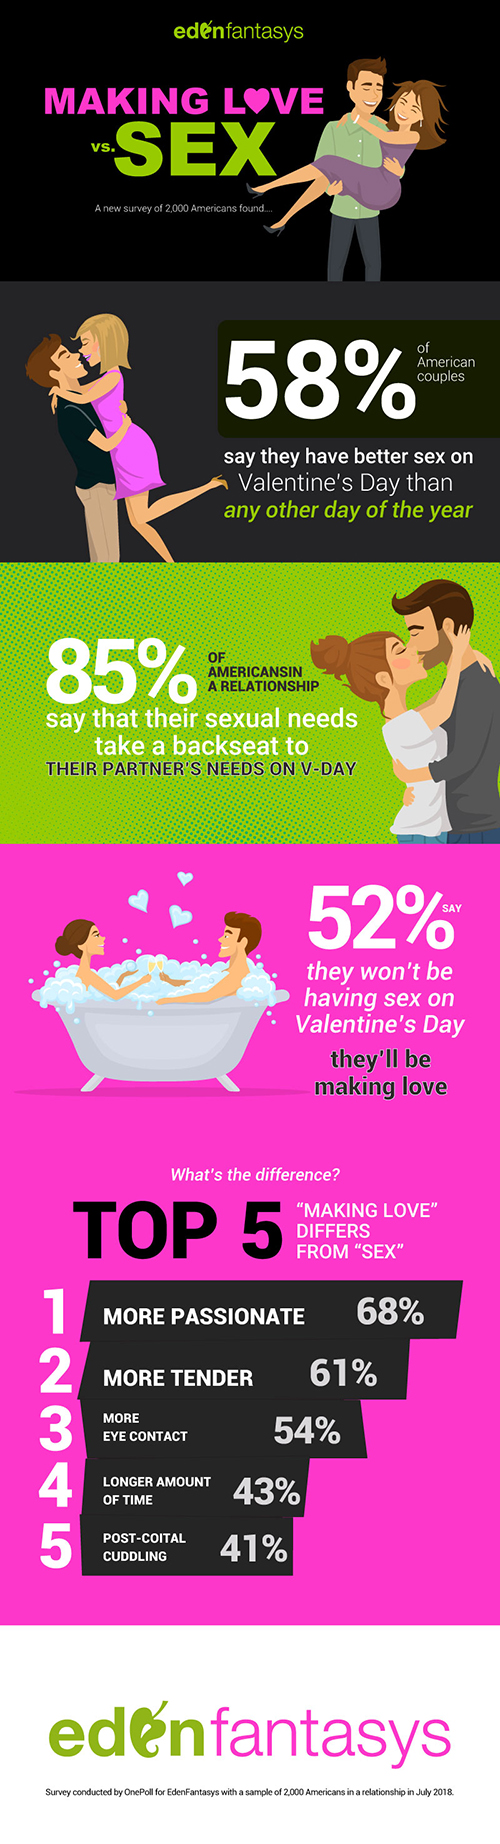 The difference between making love and having sex